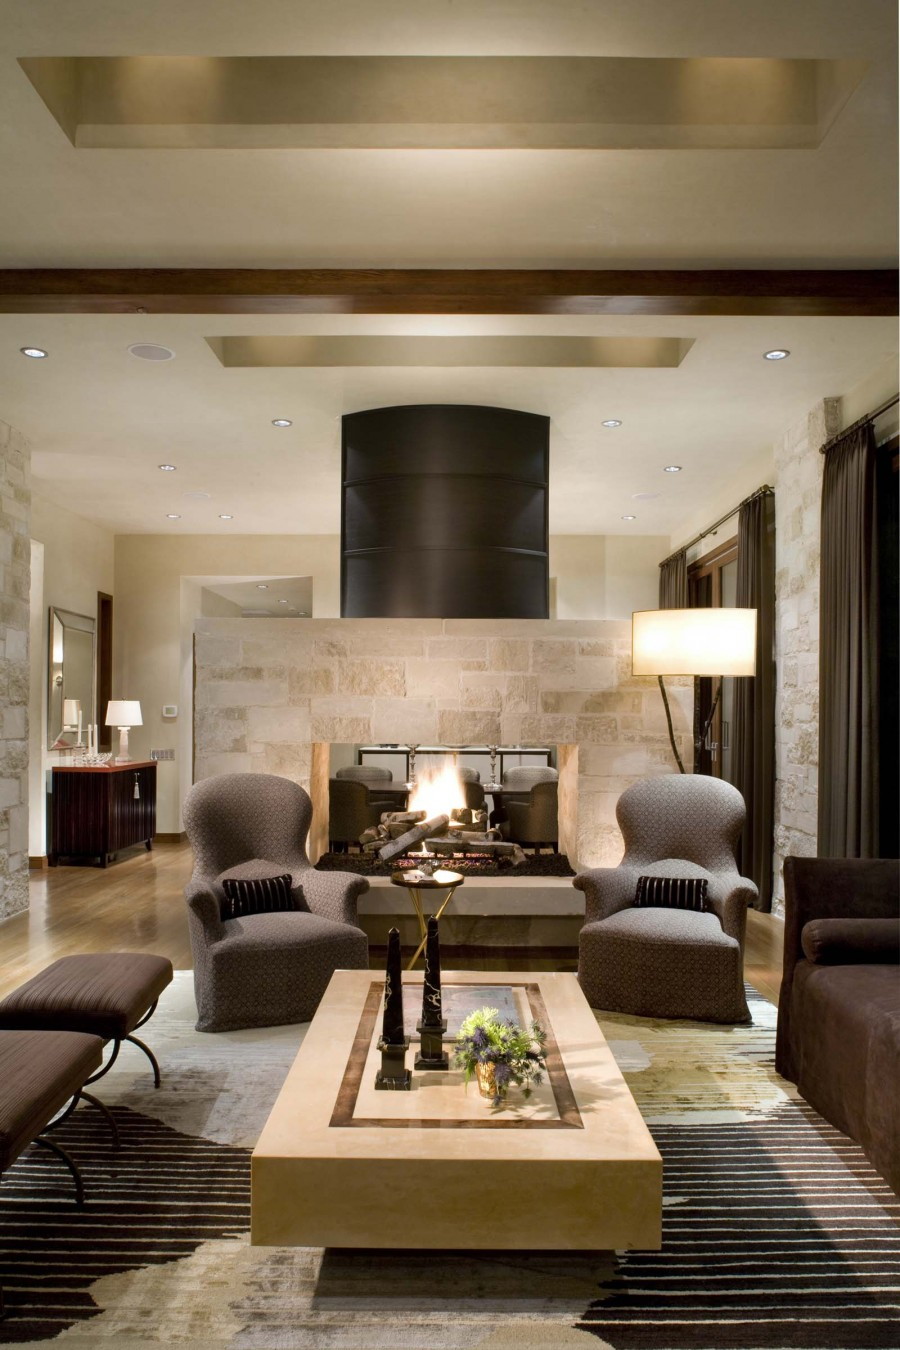 16 fabulous earth tones living room designs decoholic - Home interior design living room photos ...